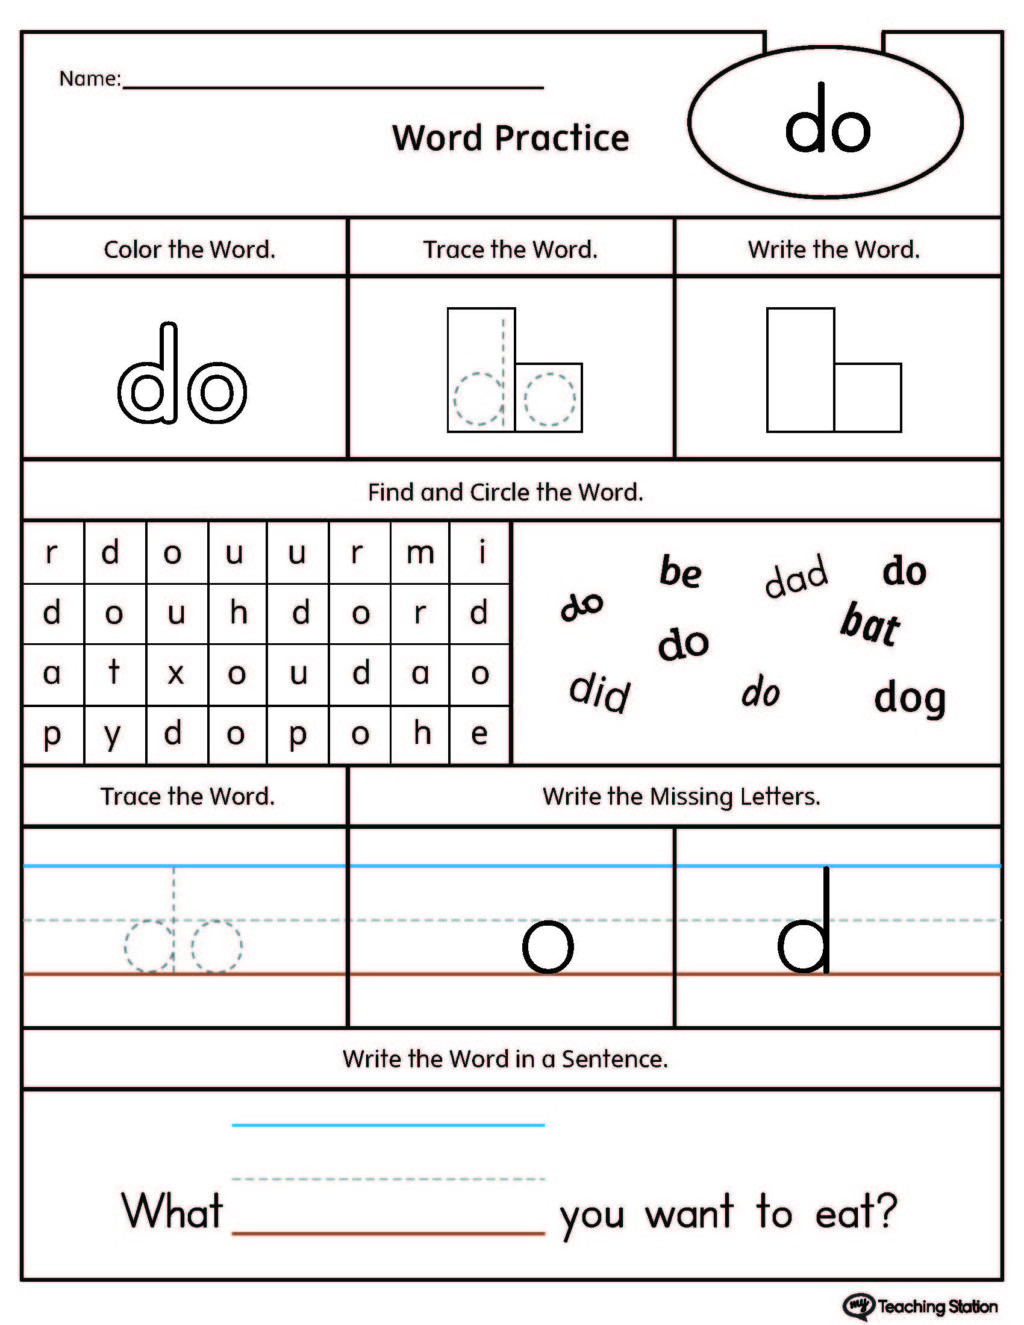 Free Printable Dog Training Worksheets Worksheet High Frequency Word Do Printablet